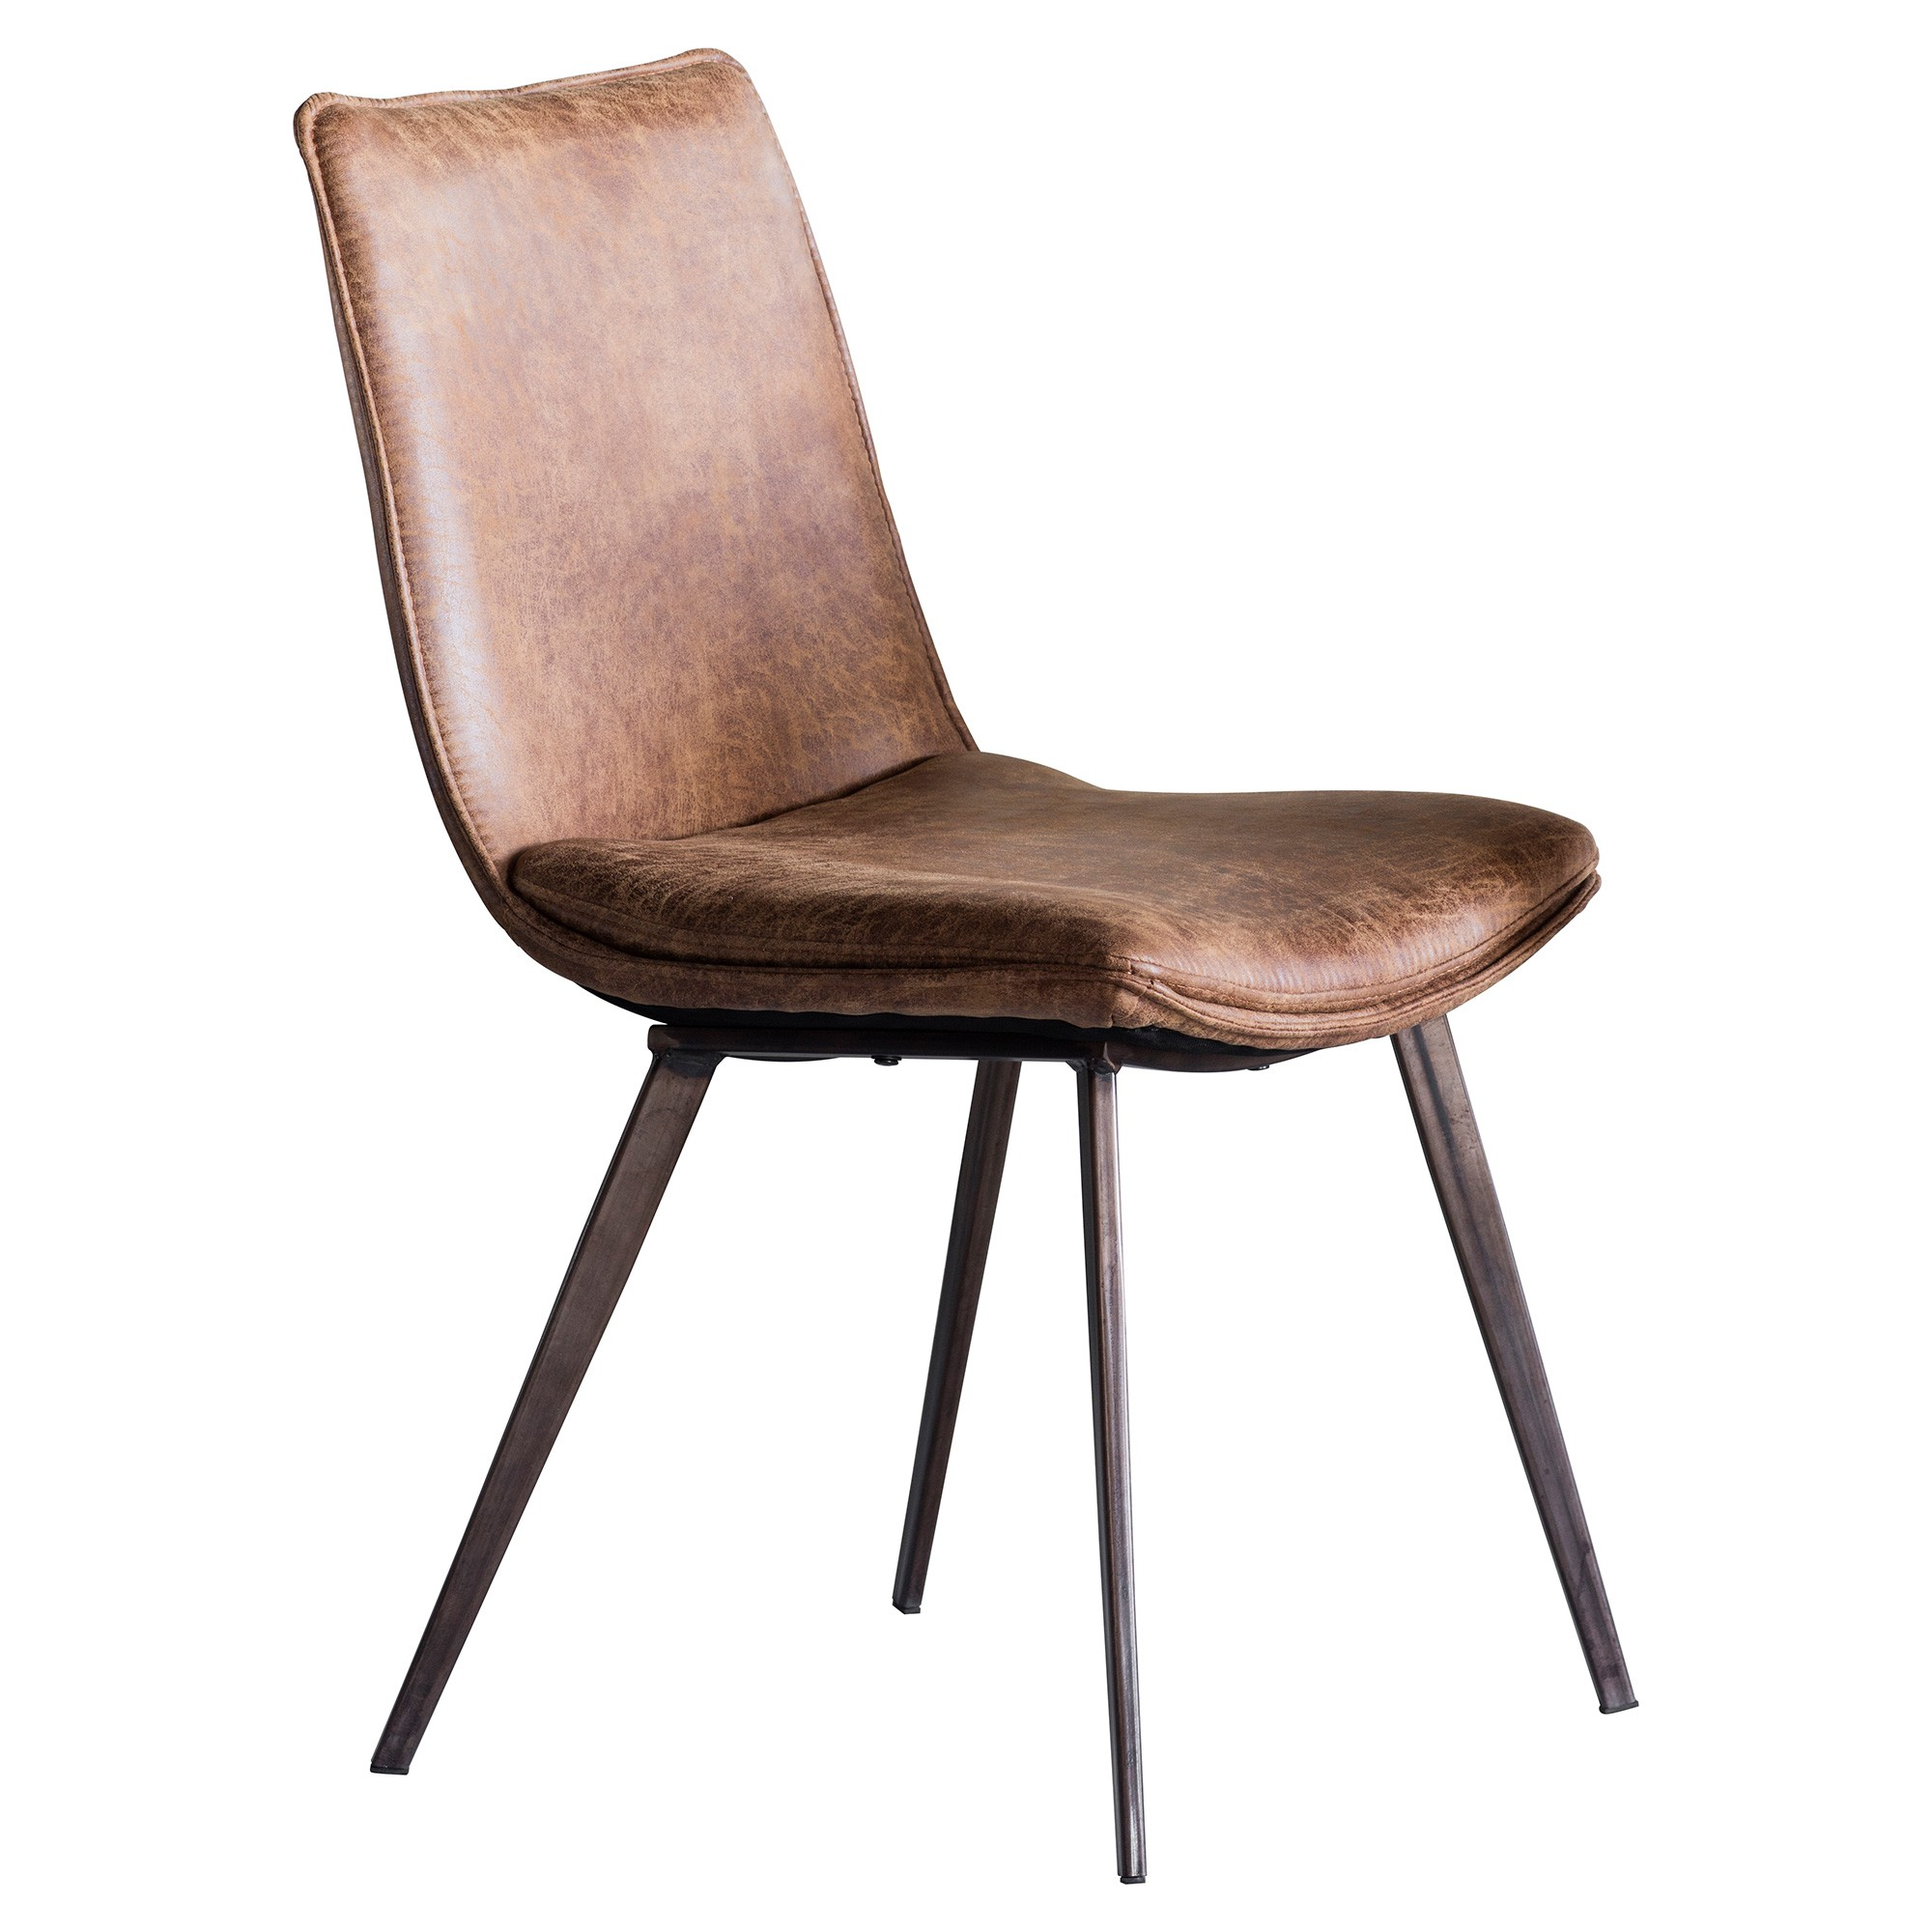 Palmer Faux Leather Dining Chair, Tan